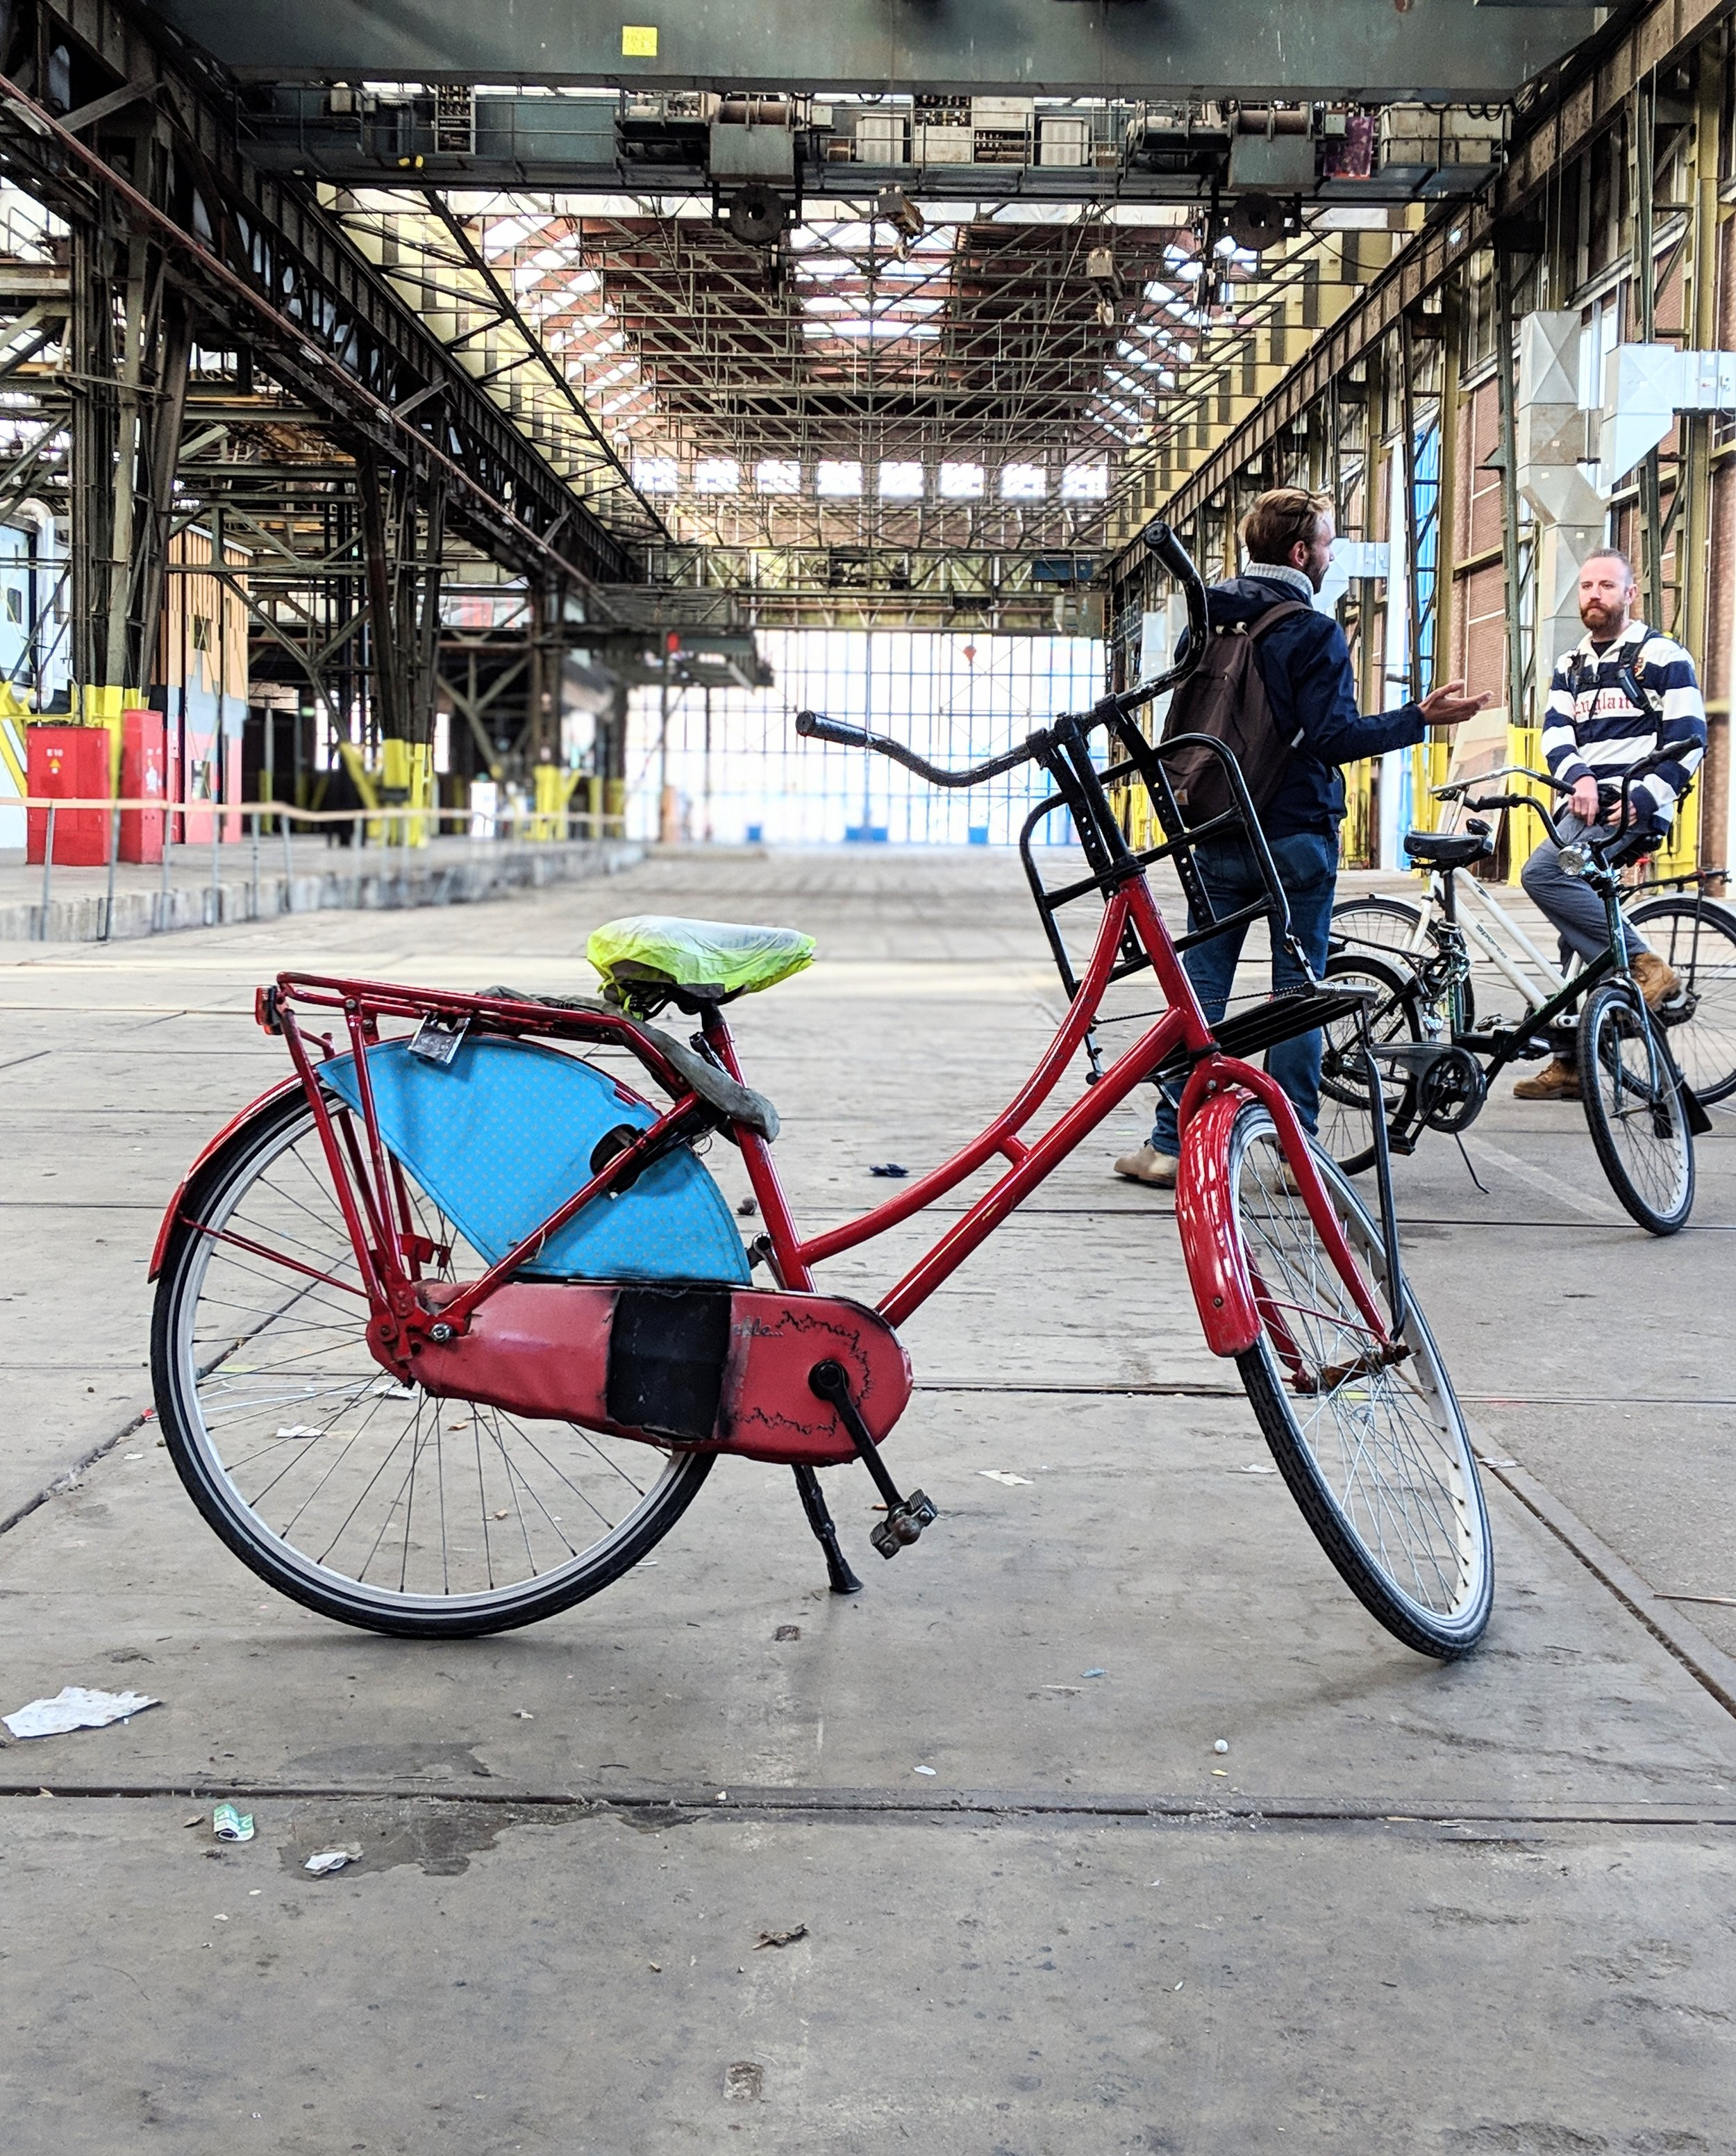 Bike Tour Amsterdam - Image by peastyle